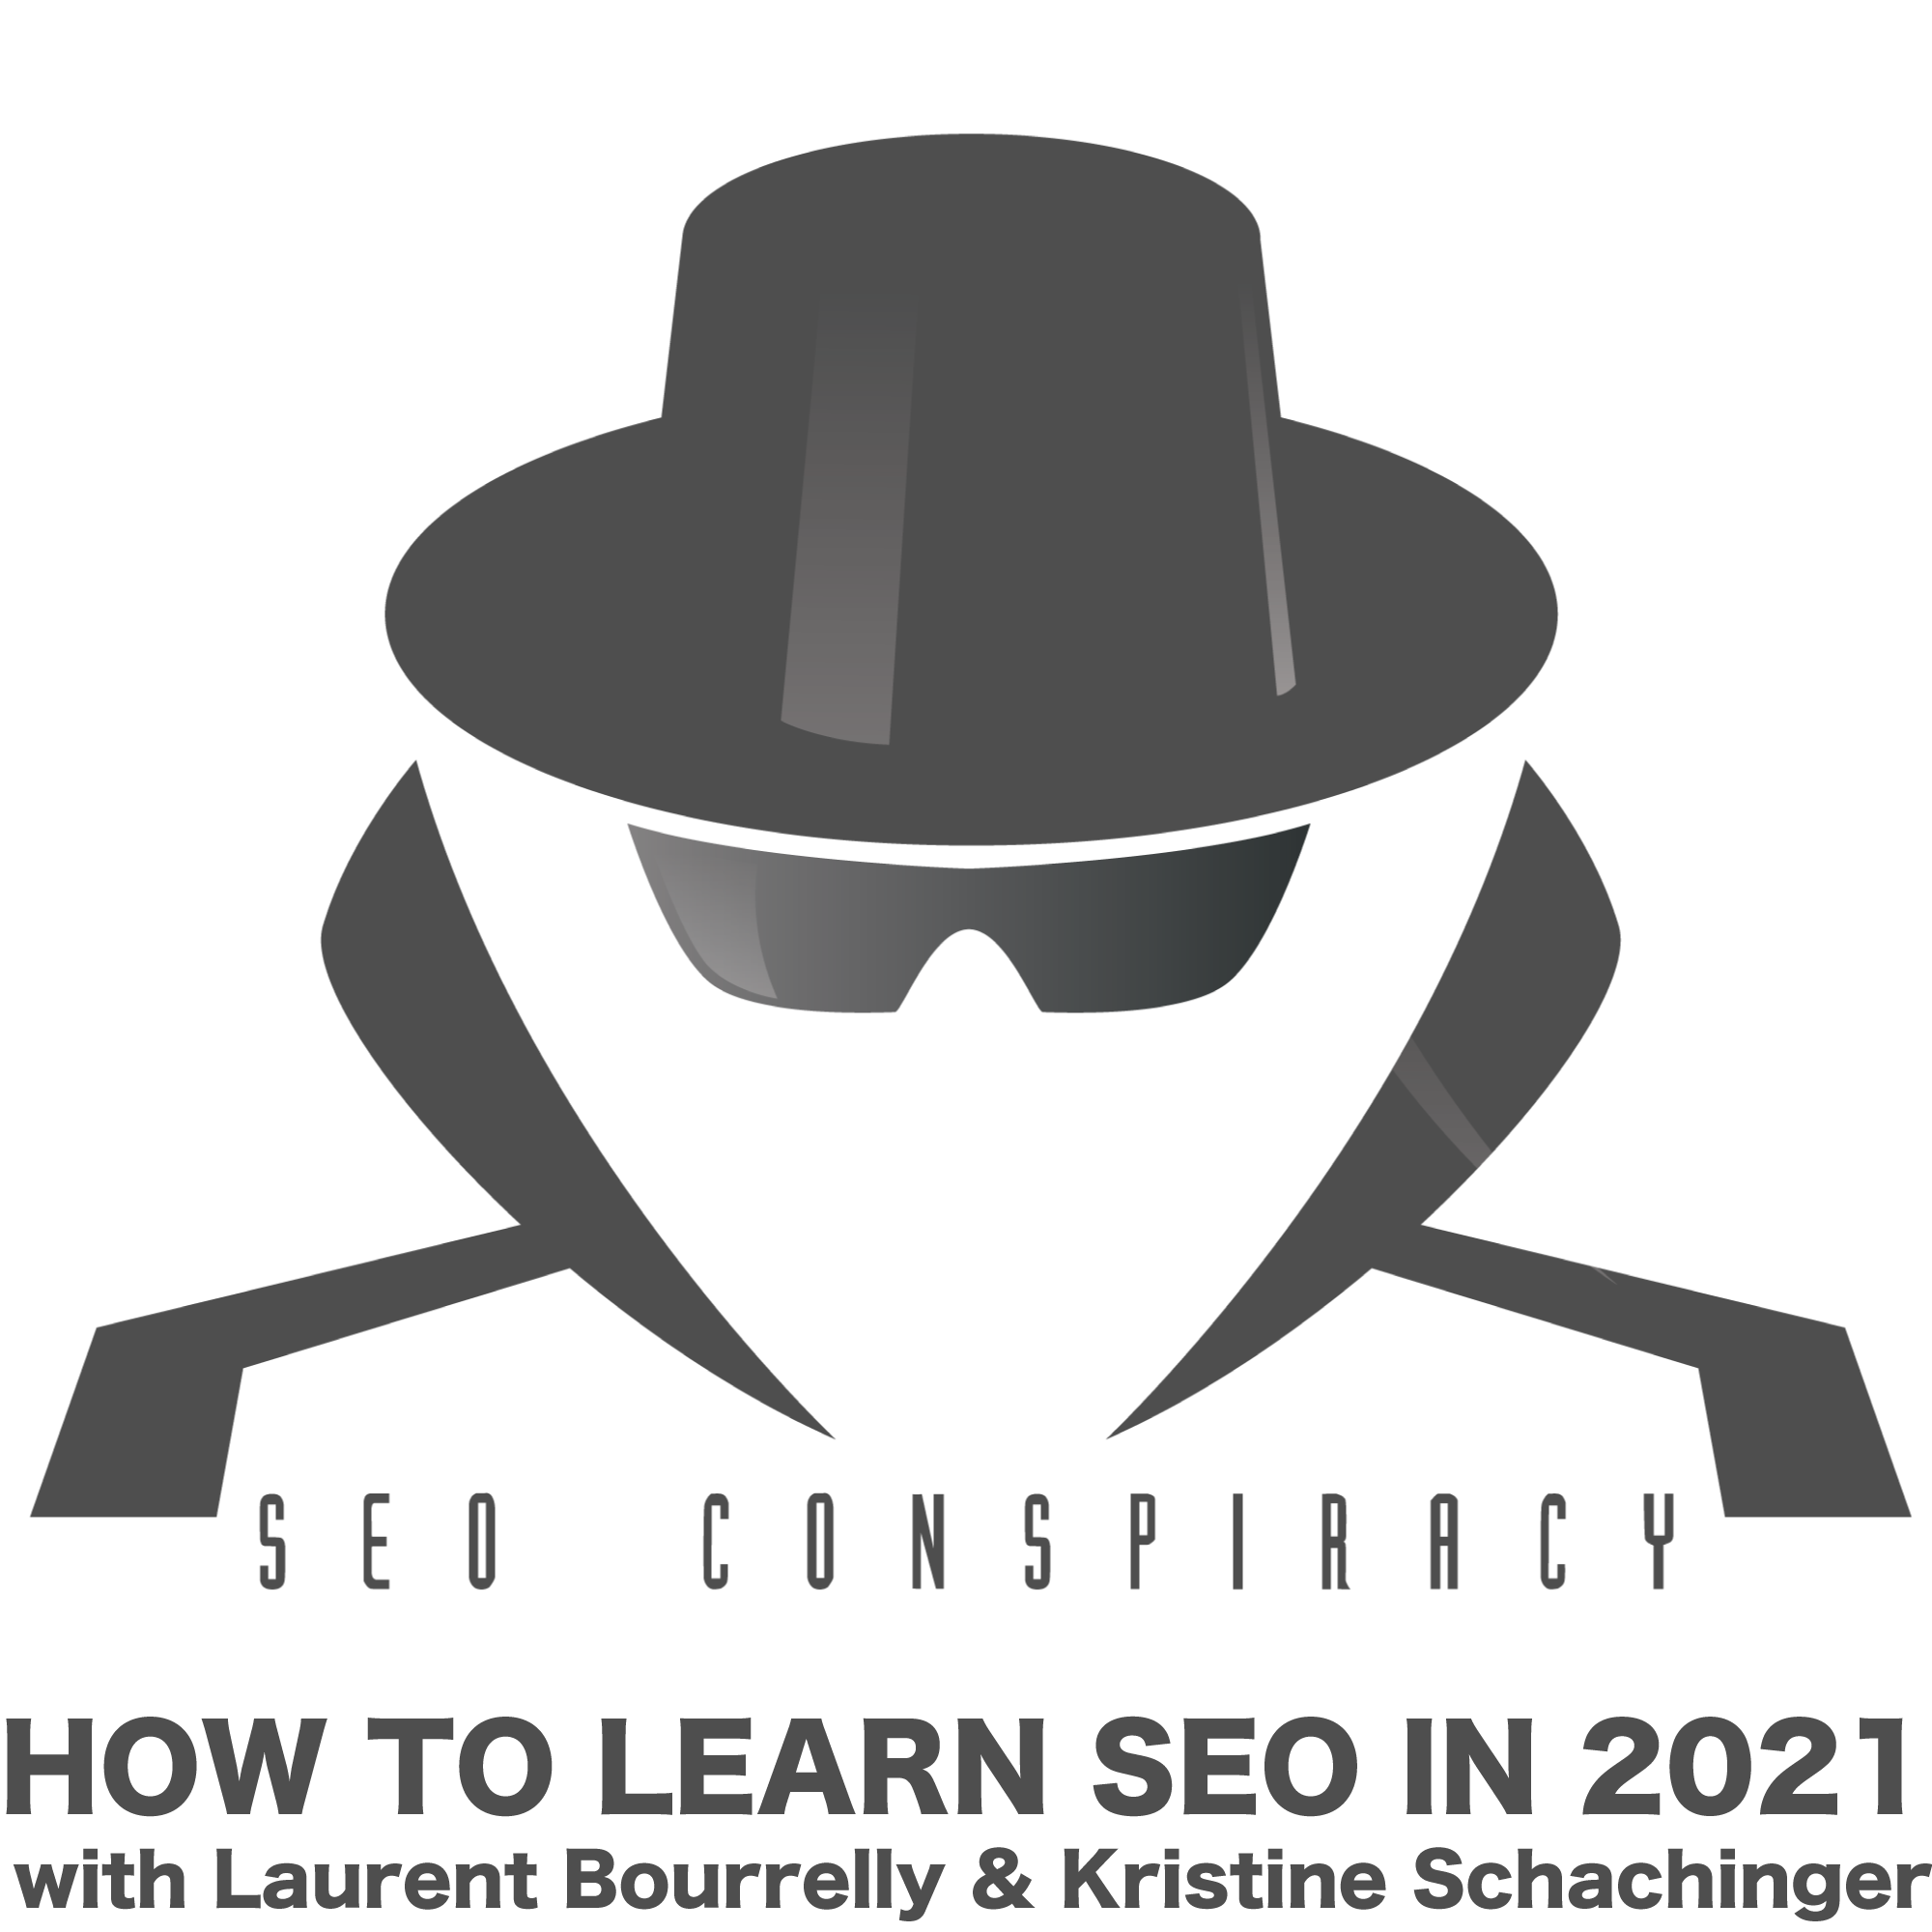 How To Learn SEO in 2021 with Kristine Schachinger